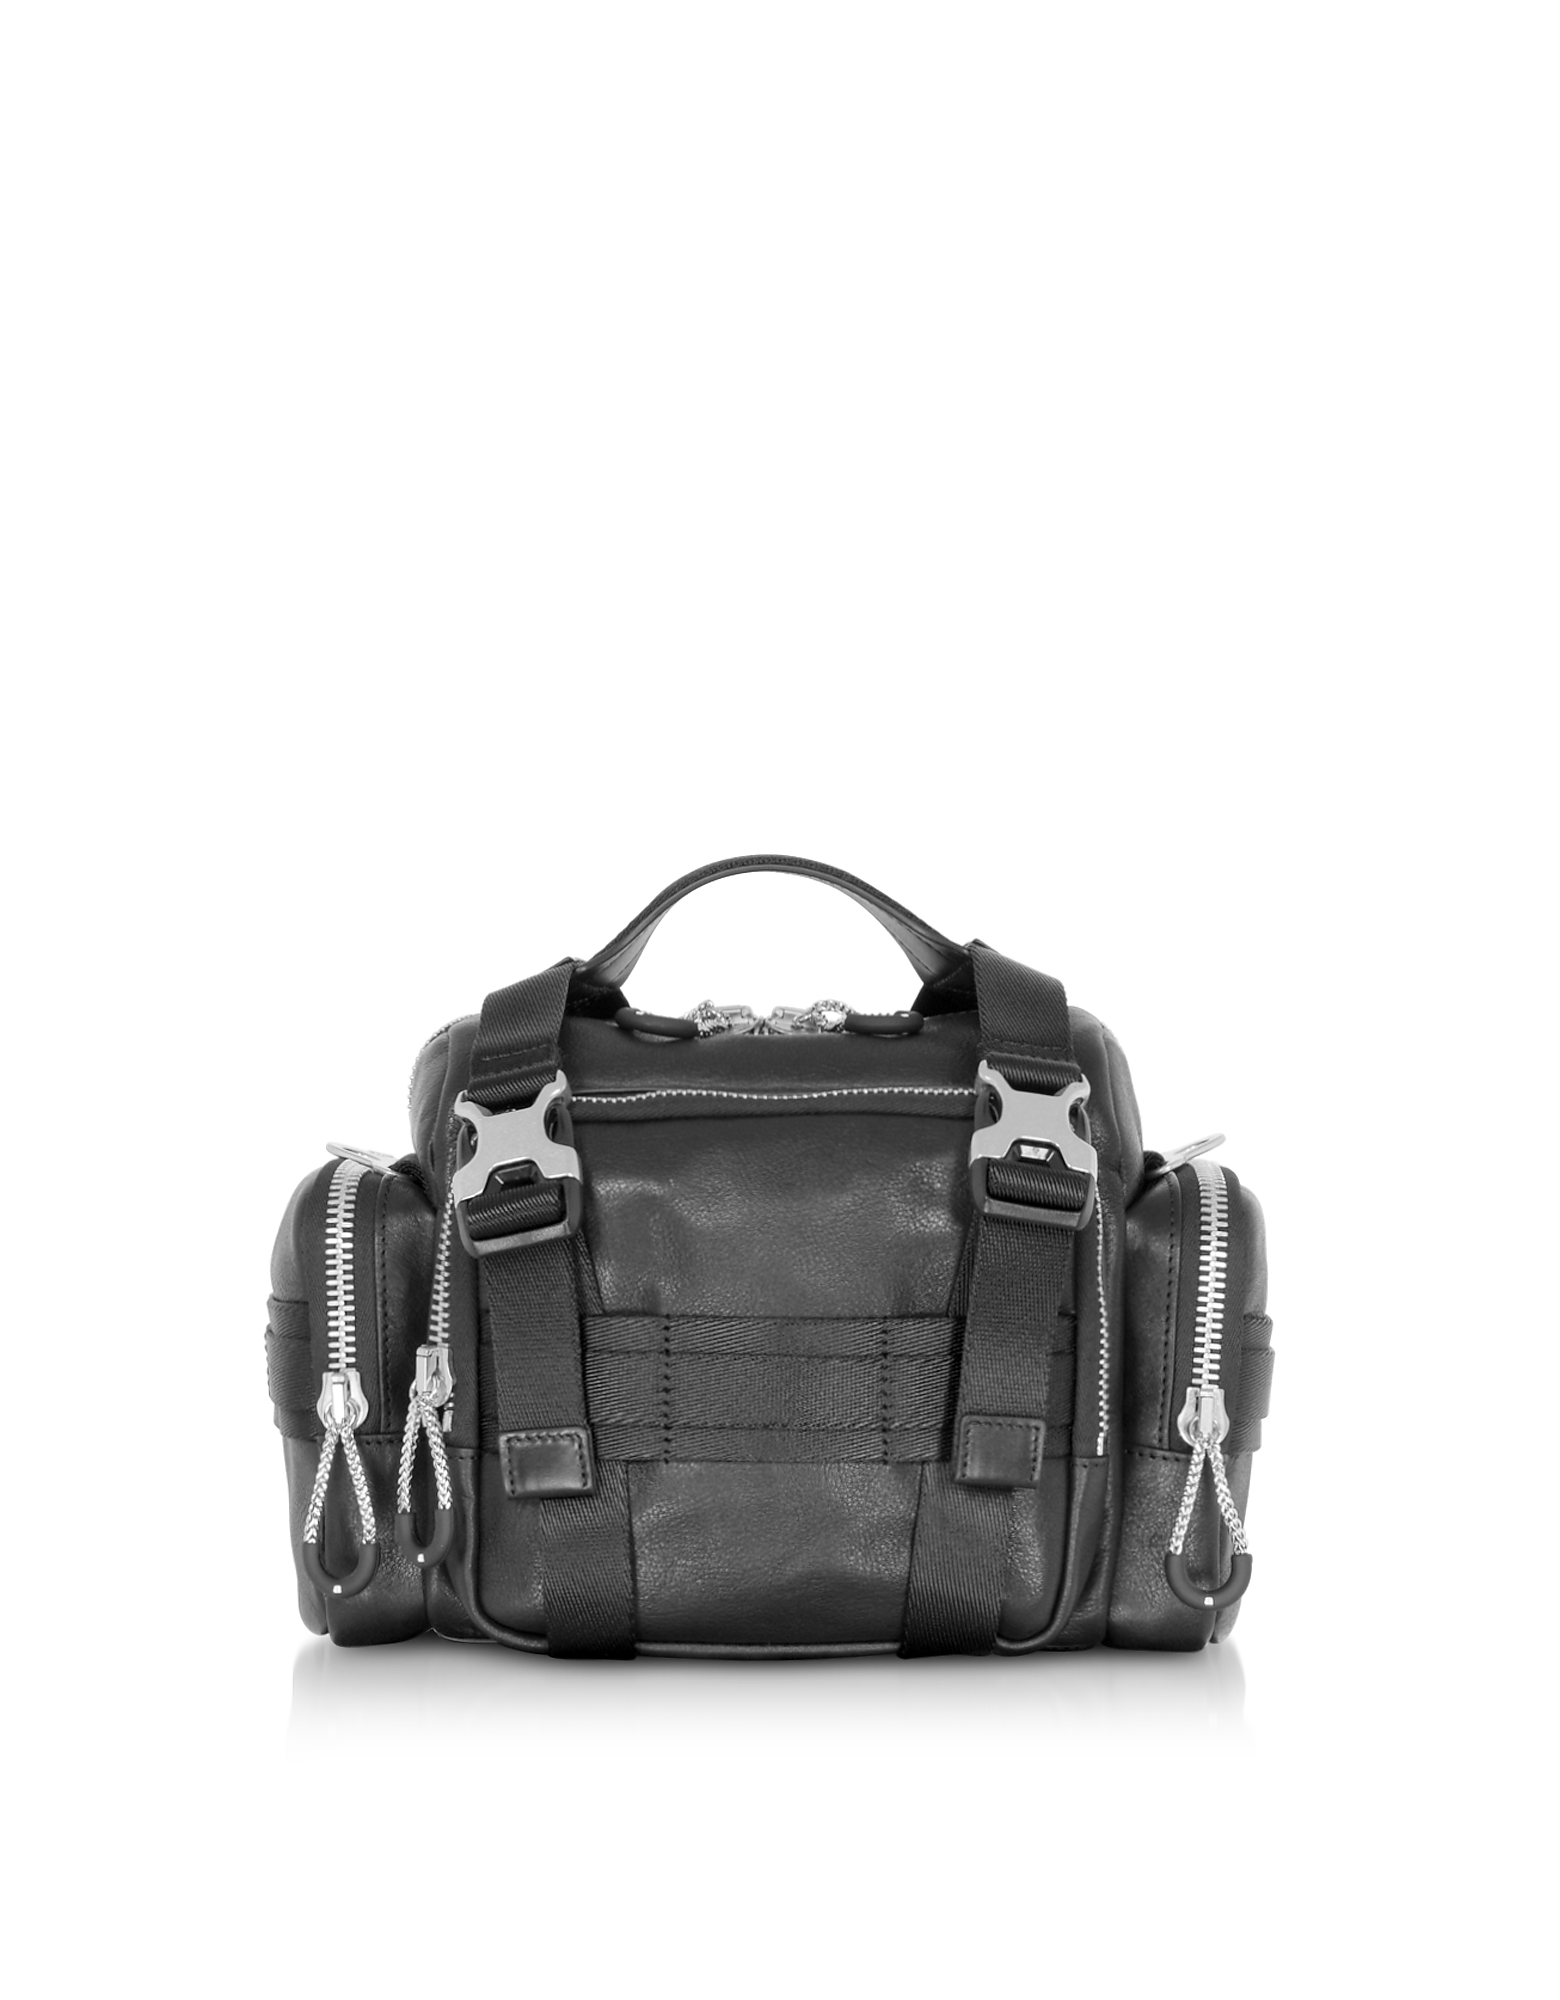 Black Leather Surplus Duffle Bag